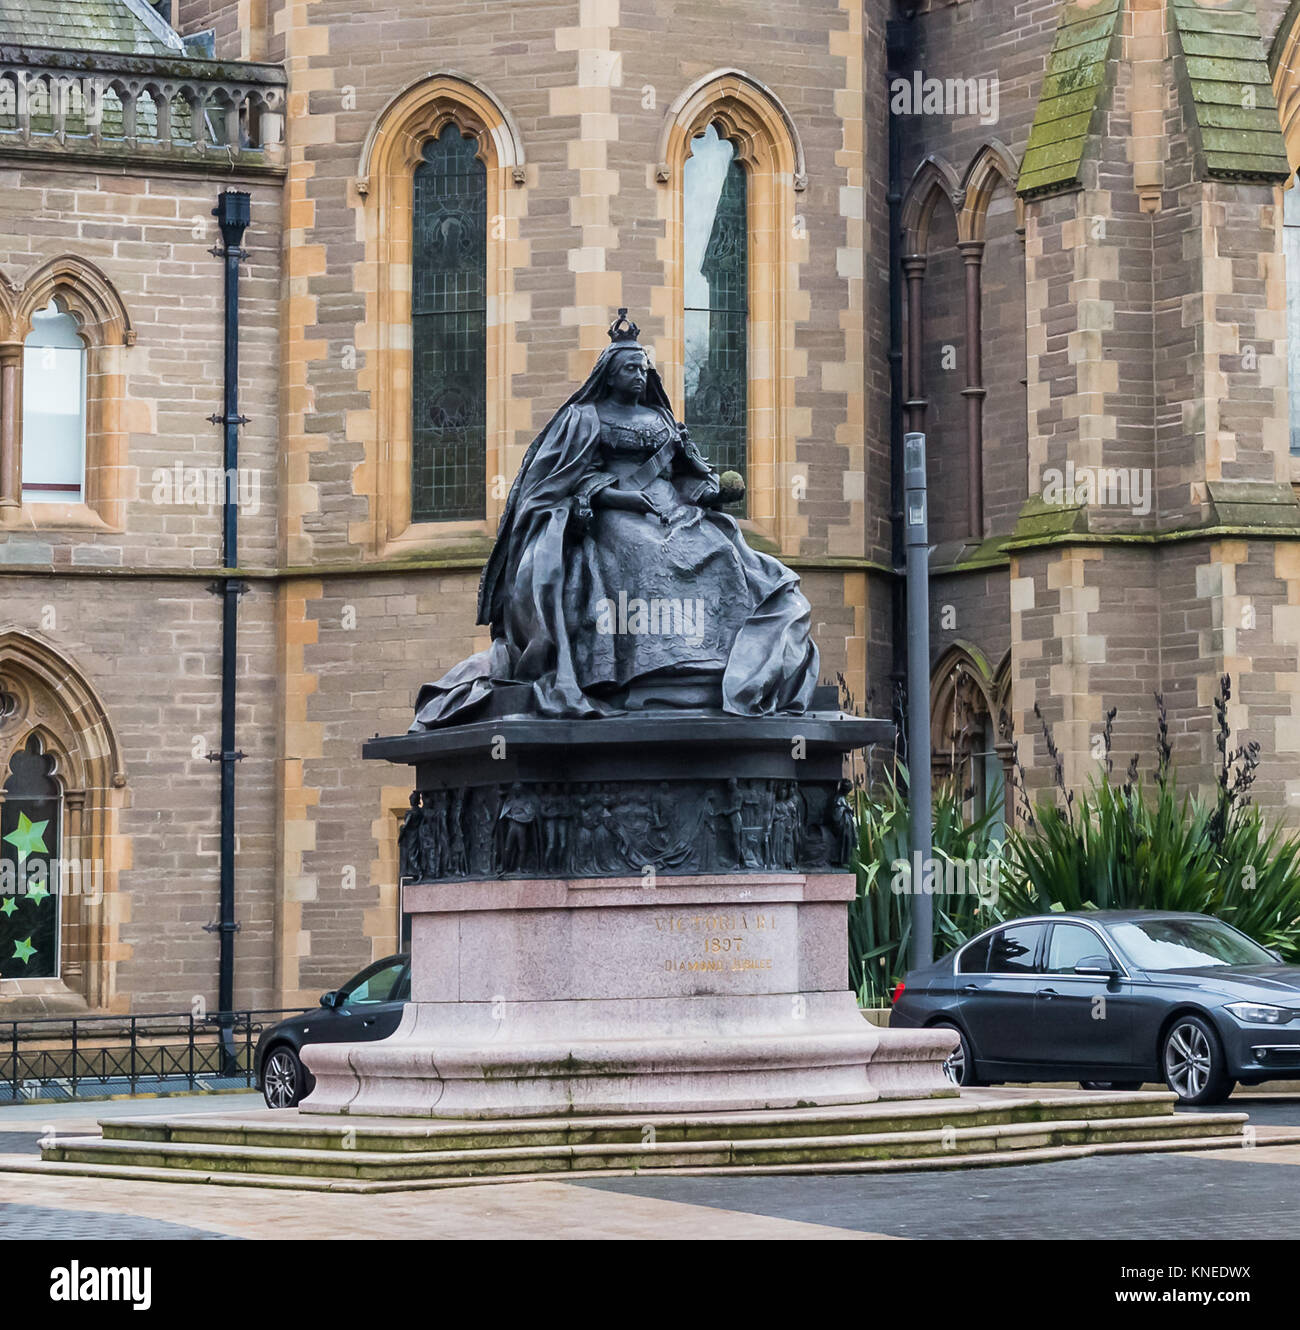 Dundee,Scotland,UK-Dercember 05,2017: Queen Victoria's Statue which is situated in Albert Square Dundee. - Stock Image